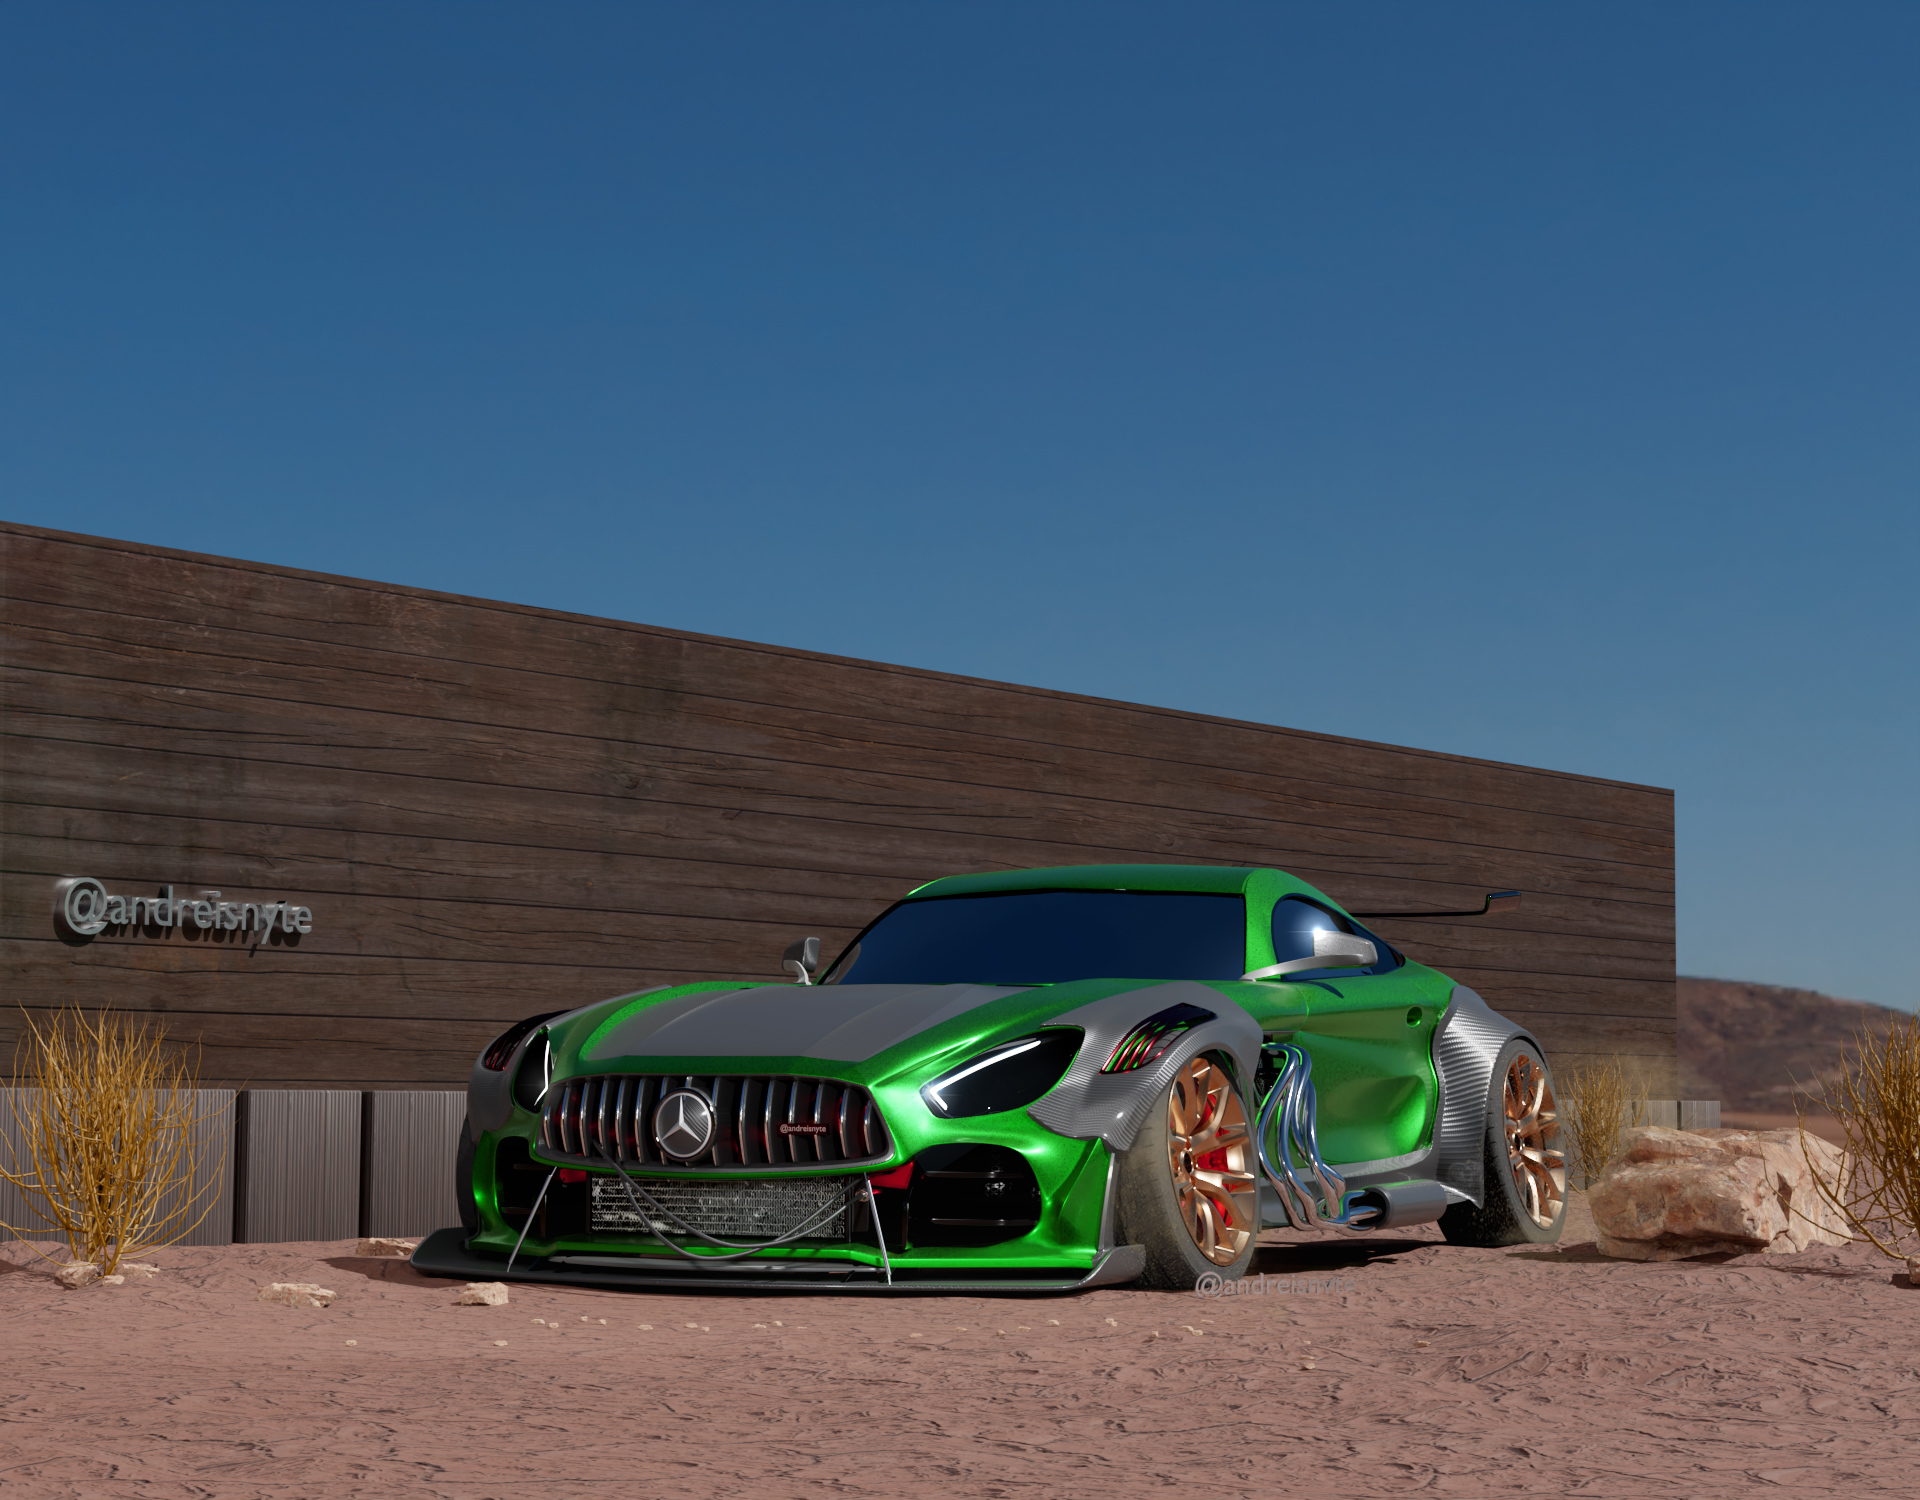 Green sports car ready to drive